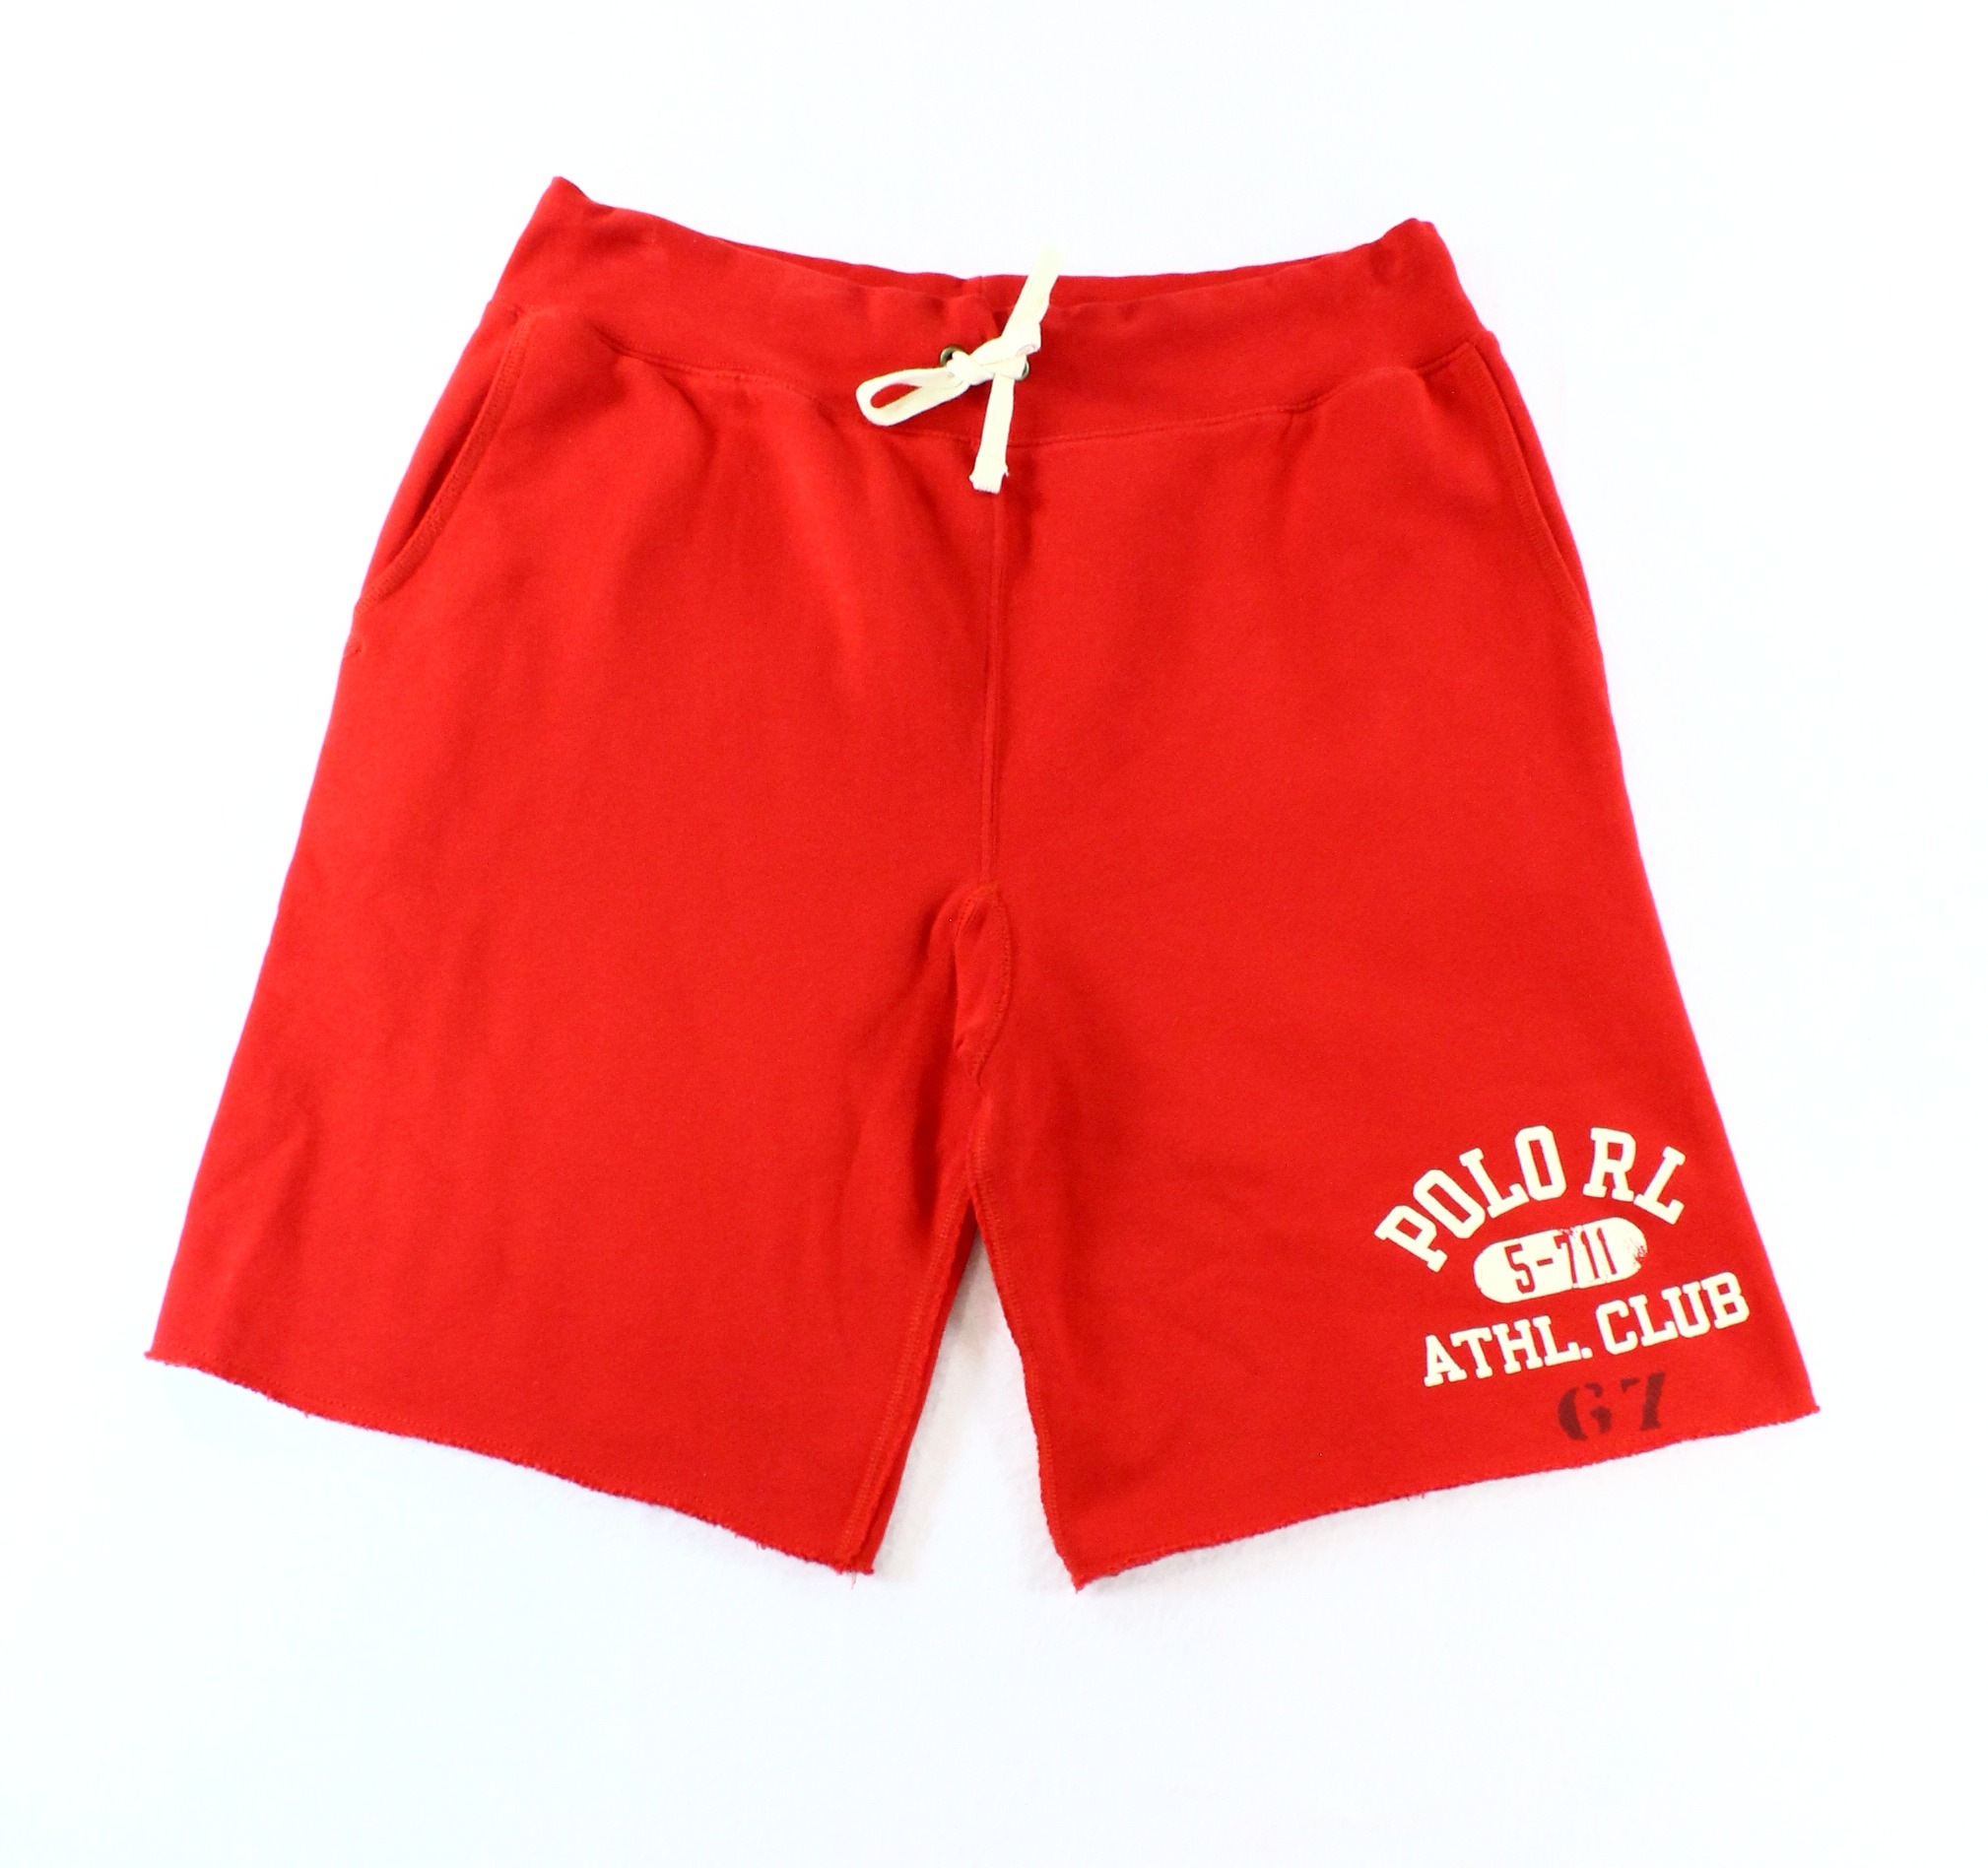 Polo Ralph Lauren NEW Red Mens XL Drawstring Casual Cut-Off Sweat Shorts $85